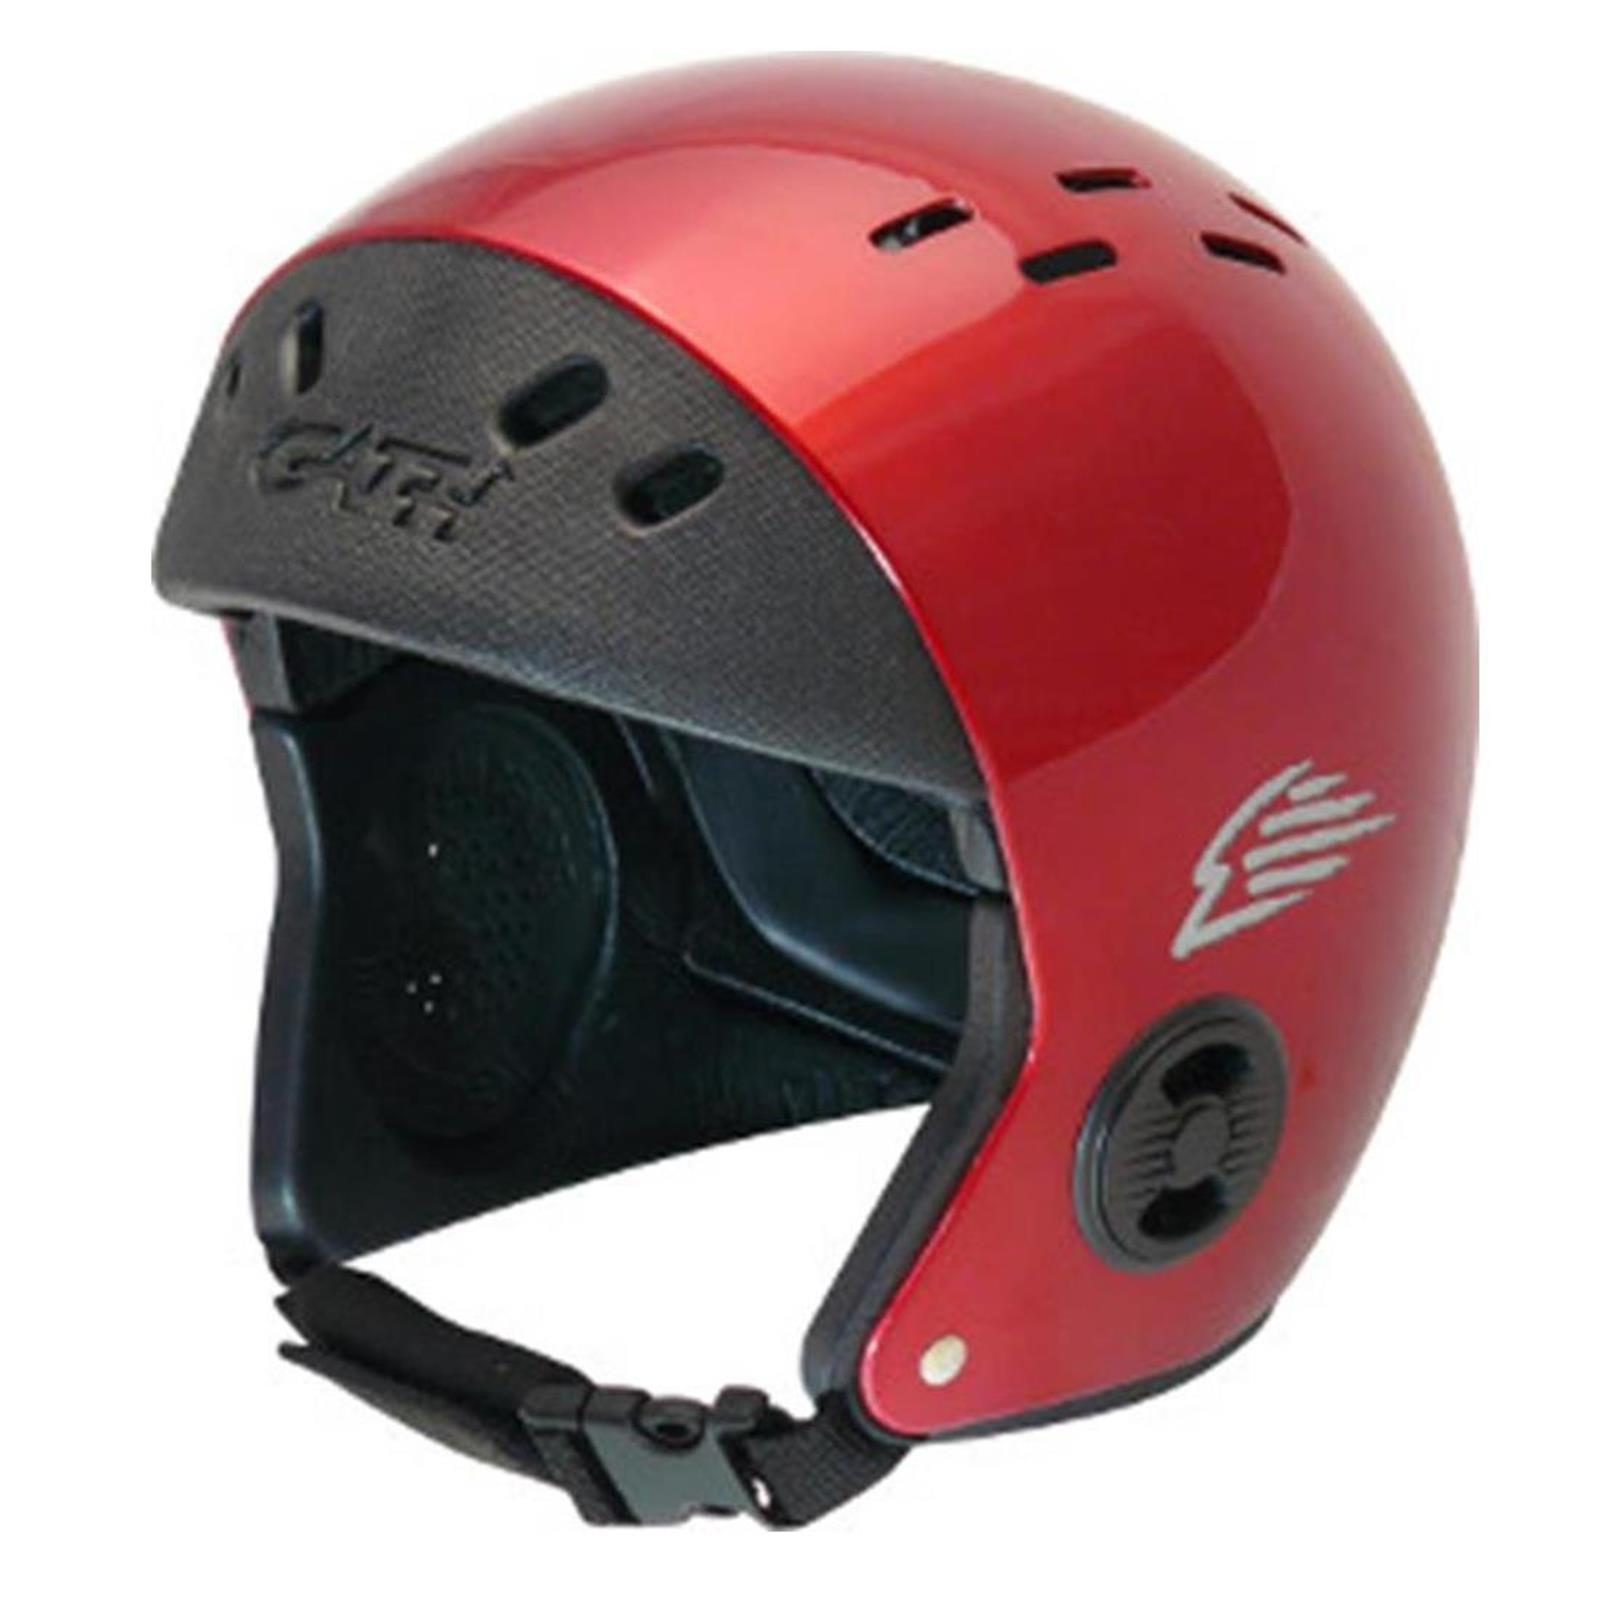 GATH Helm Standard XL red gloss